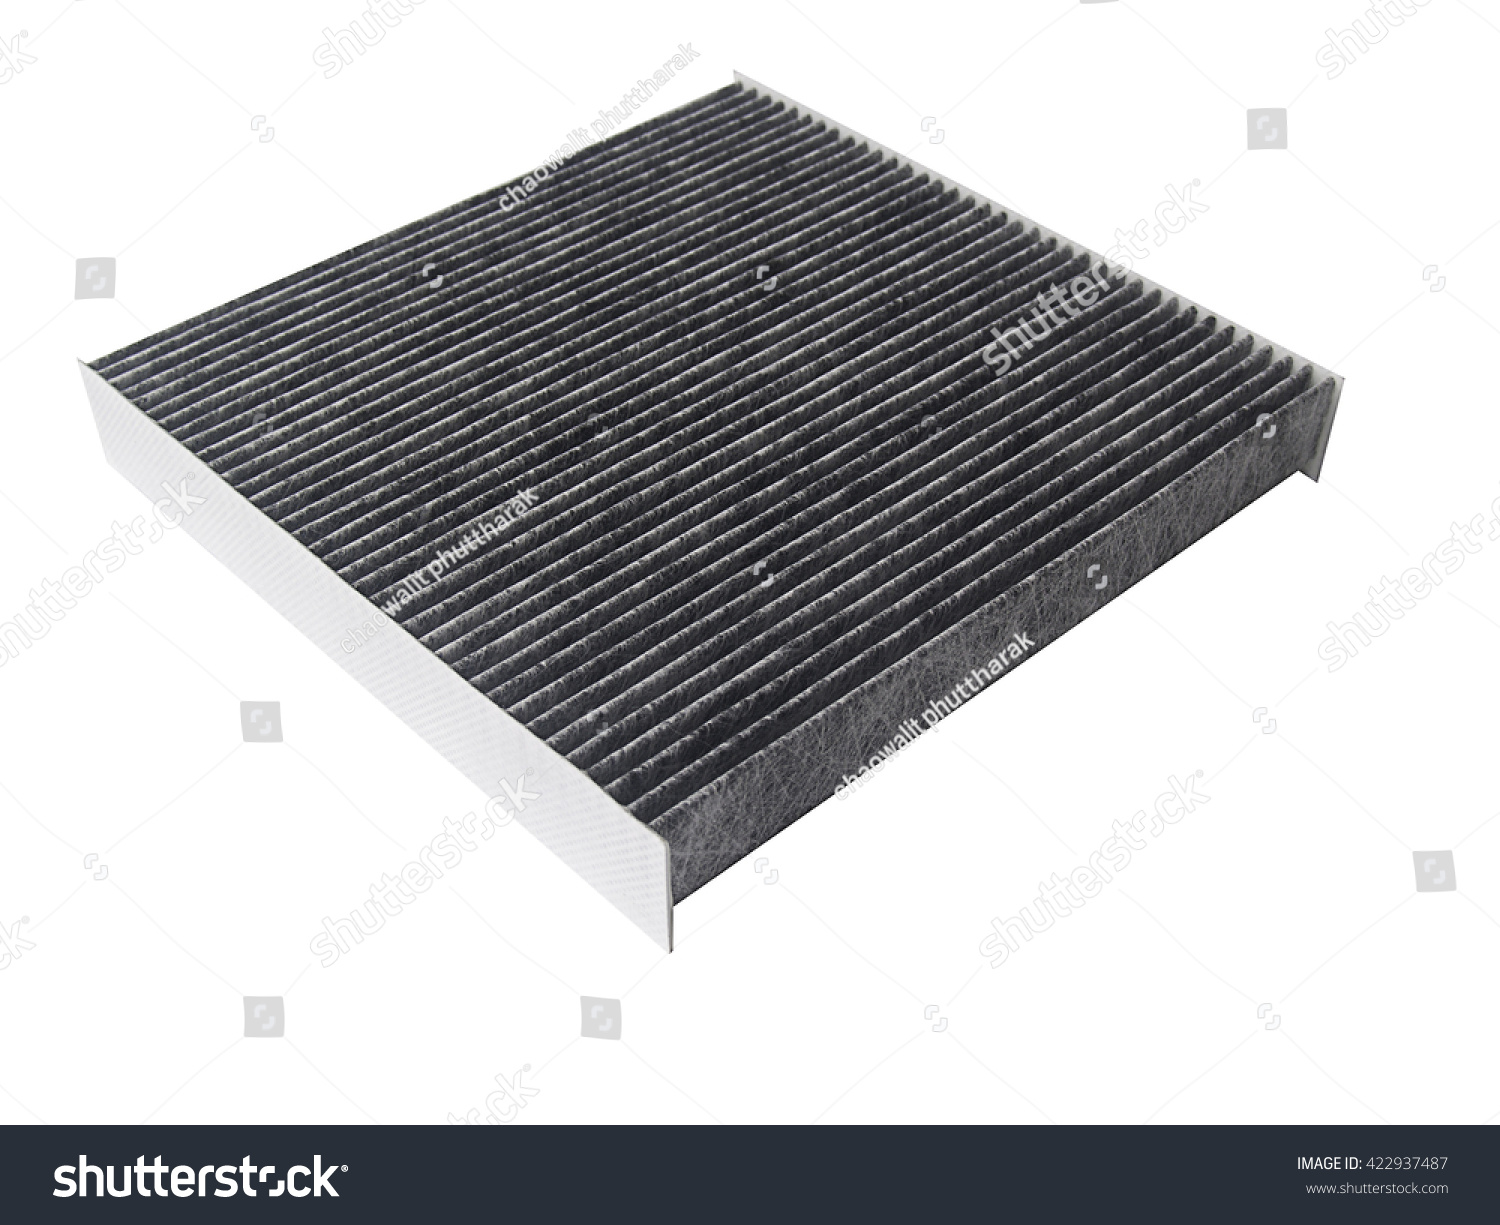 New Carbon Car Air Conditioner Filter Stock Photo (Edit Now) 422937487